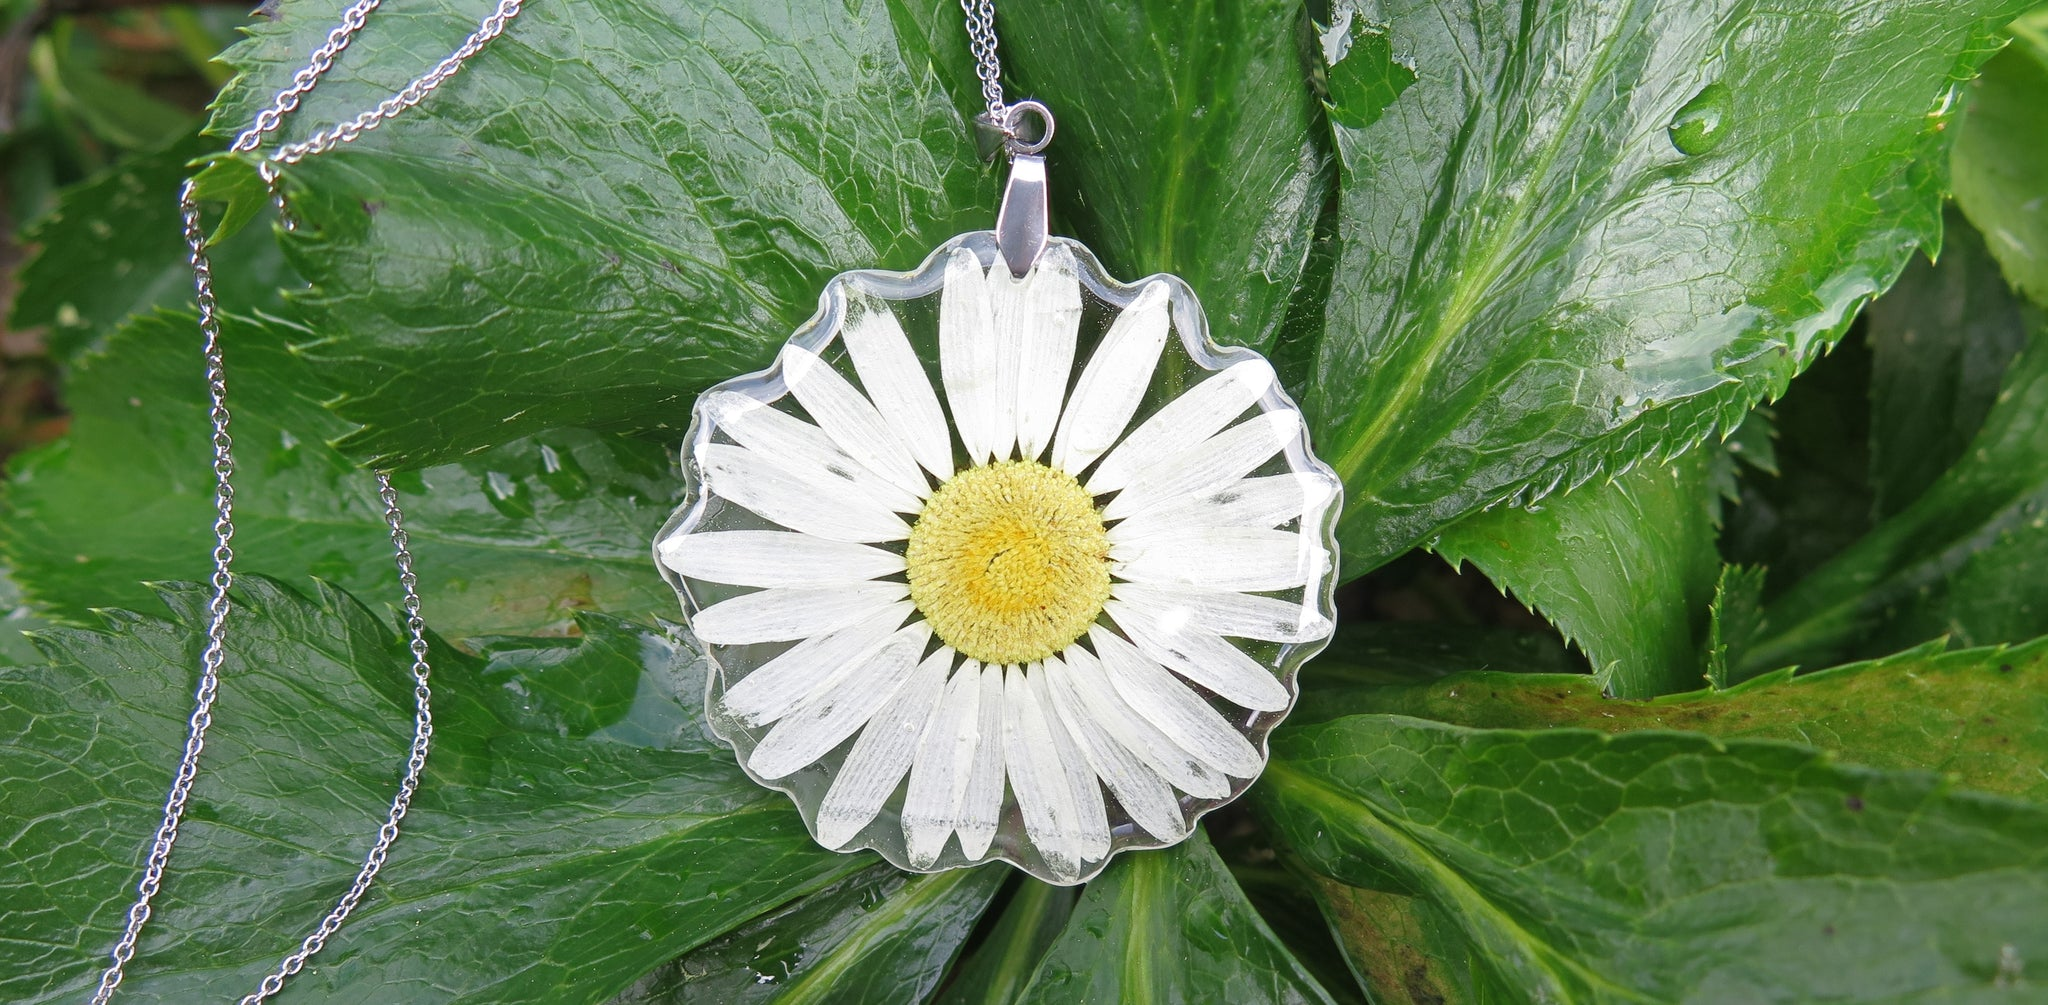 187f3a311 smilewithflower floweral art; nature jewelry handcrafted ...